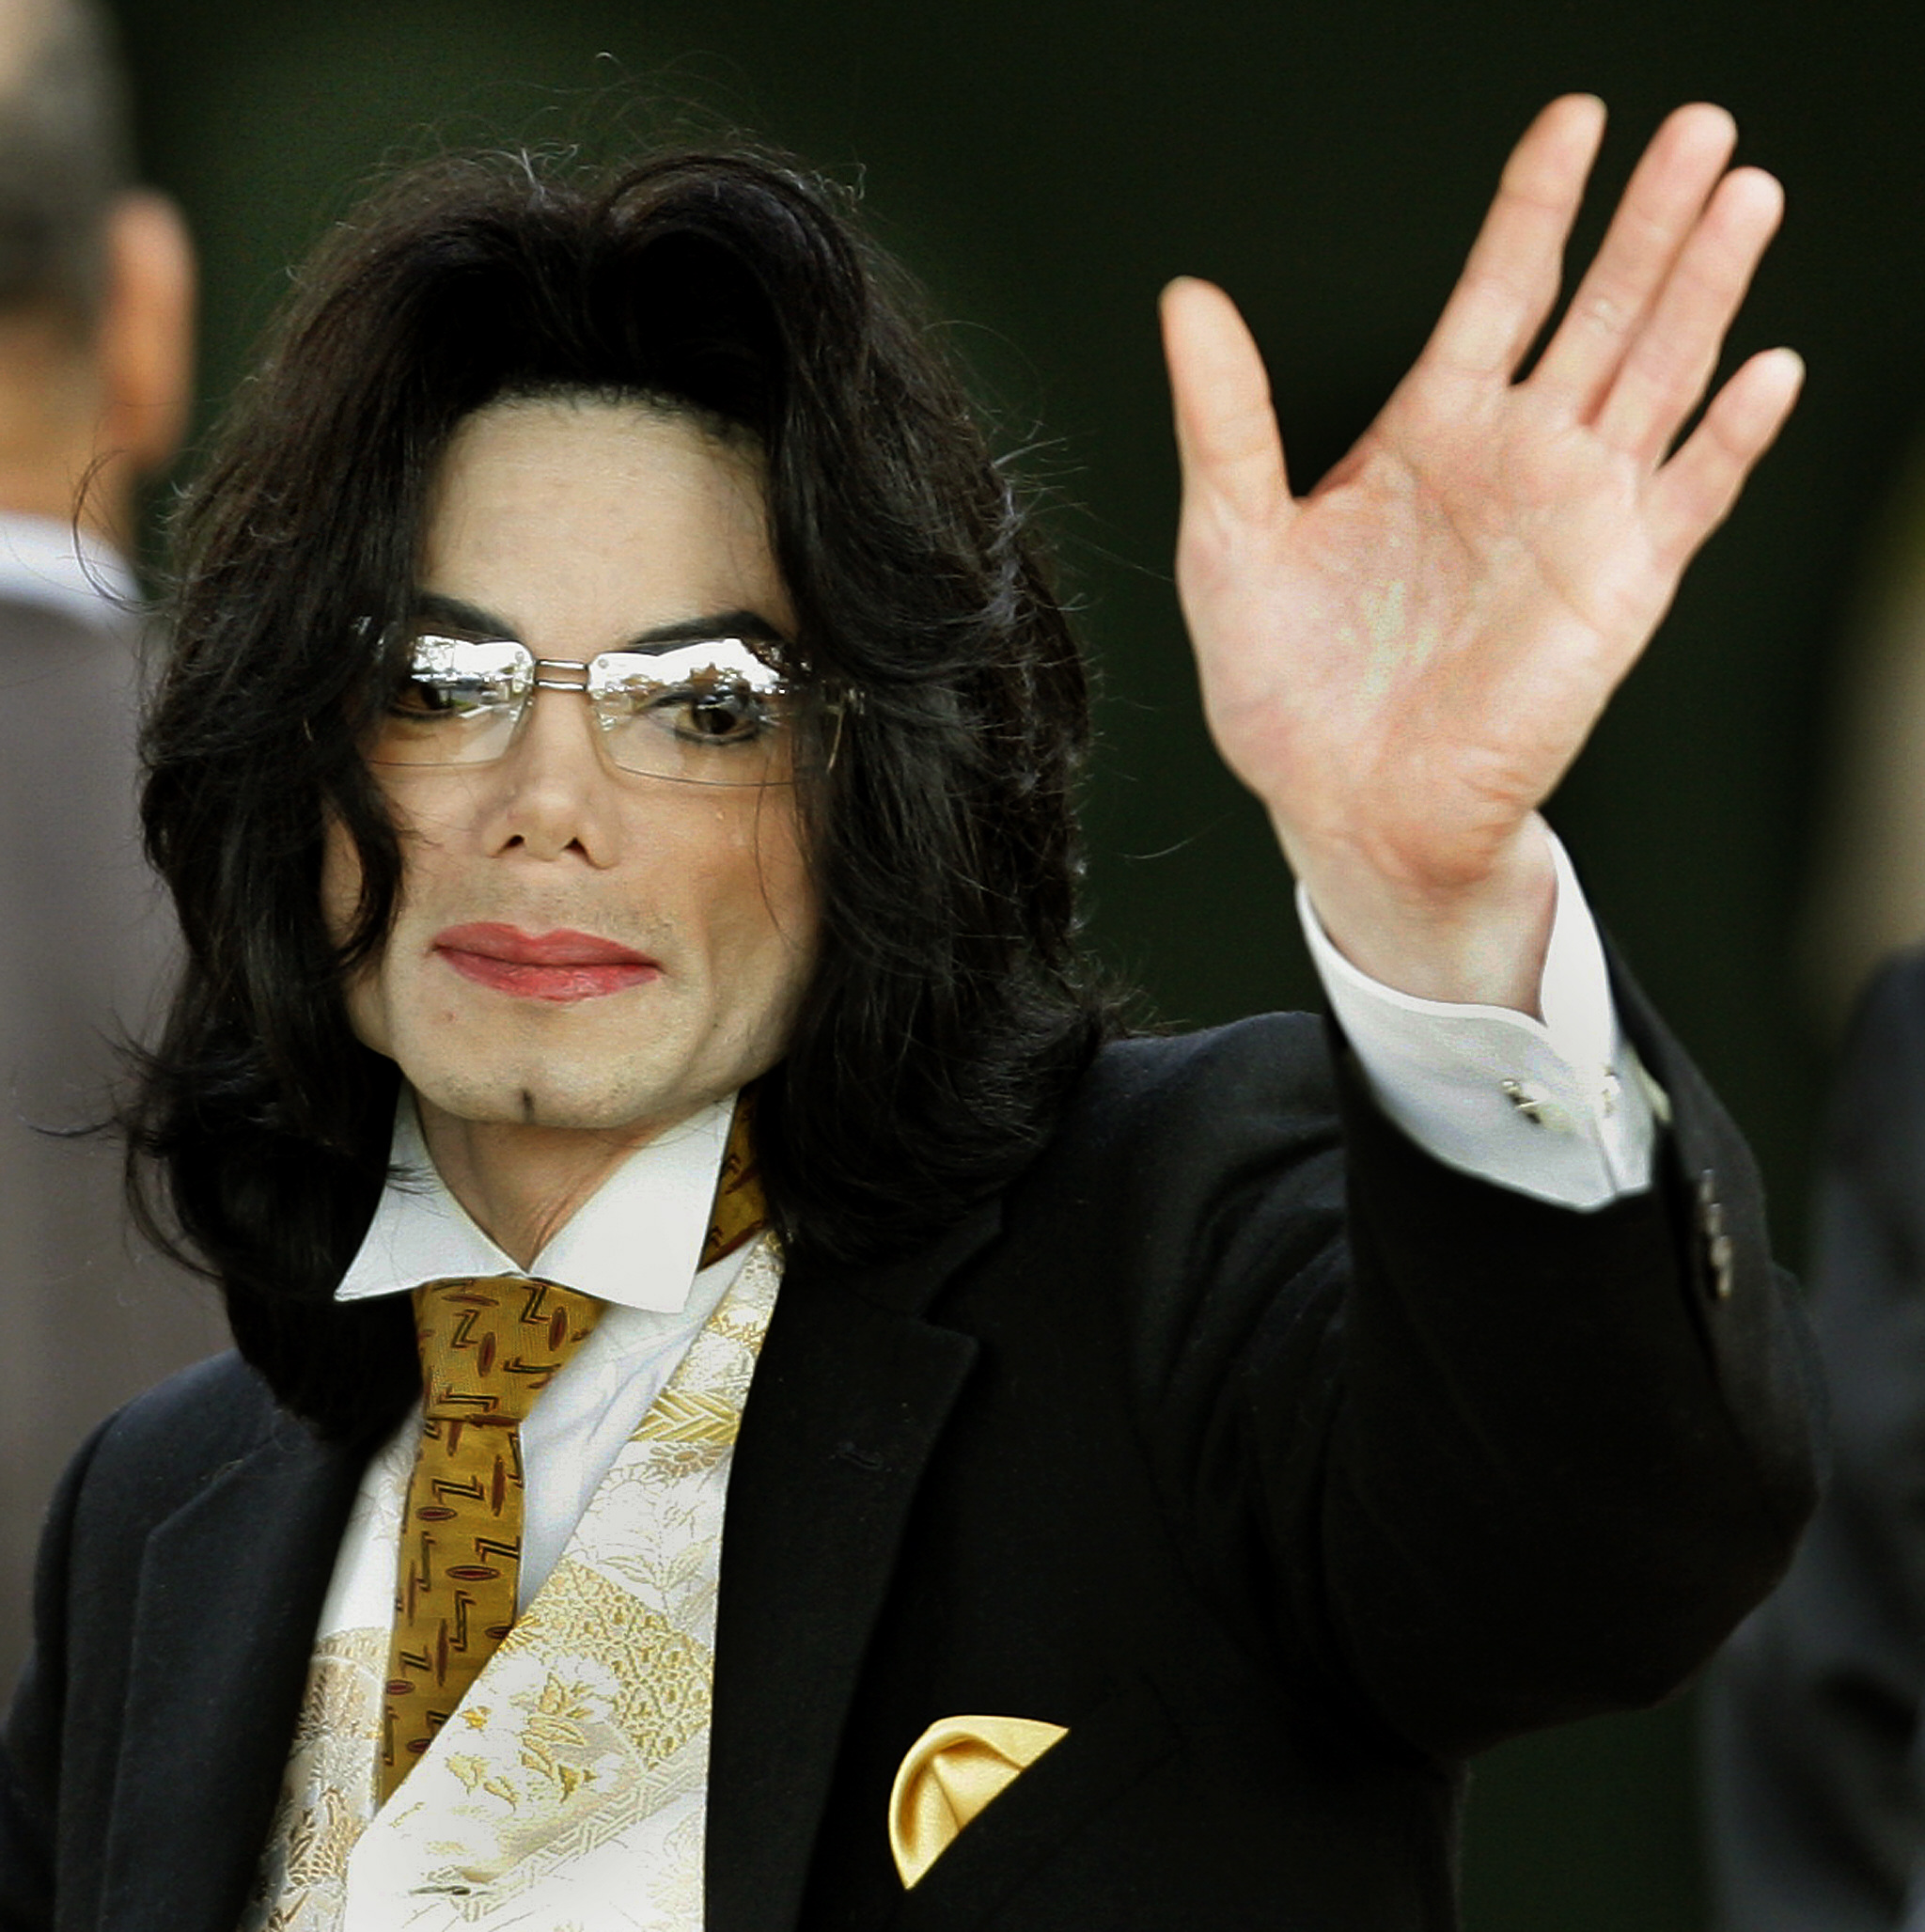 """(FILES) In this file photo taken on June 03, 2005, Michael Jackson waves as he arrives at the Santa Barbara County courthouse in Santa Maria, California. - The creators of """"The Simpsons"""" have shelved one of the animated series' classic episodes because it features Michael Jackson's voice, the show's executive producer told The Wall Street Journal on March 8, 2019. Simpsons producers made the unanimous decision after viewing the bombshell documentary """"Leaving Neverland,"""" which revives pedophilia accusations against the late megastar in excruciating detail. (Photo by Timothy A. CLARY / AFP)"""